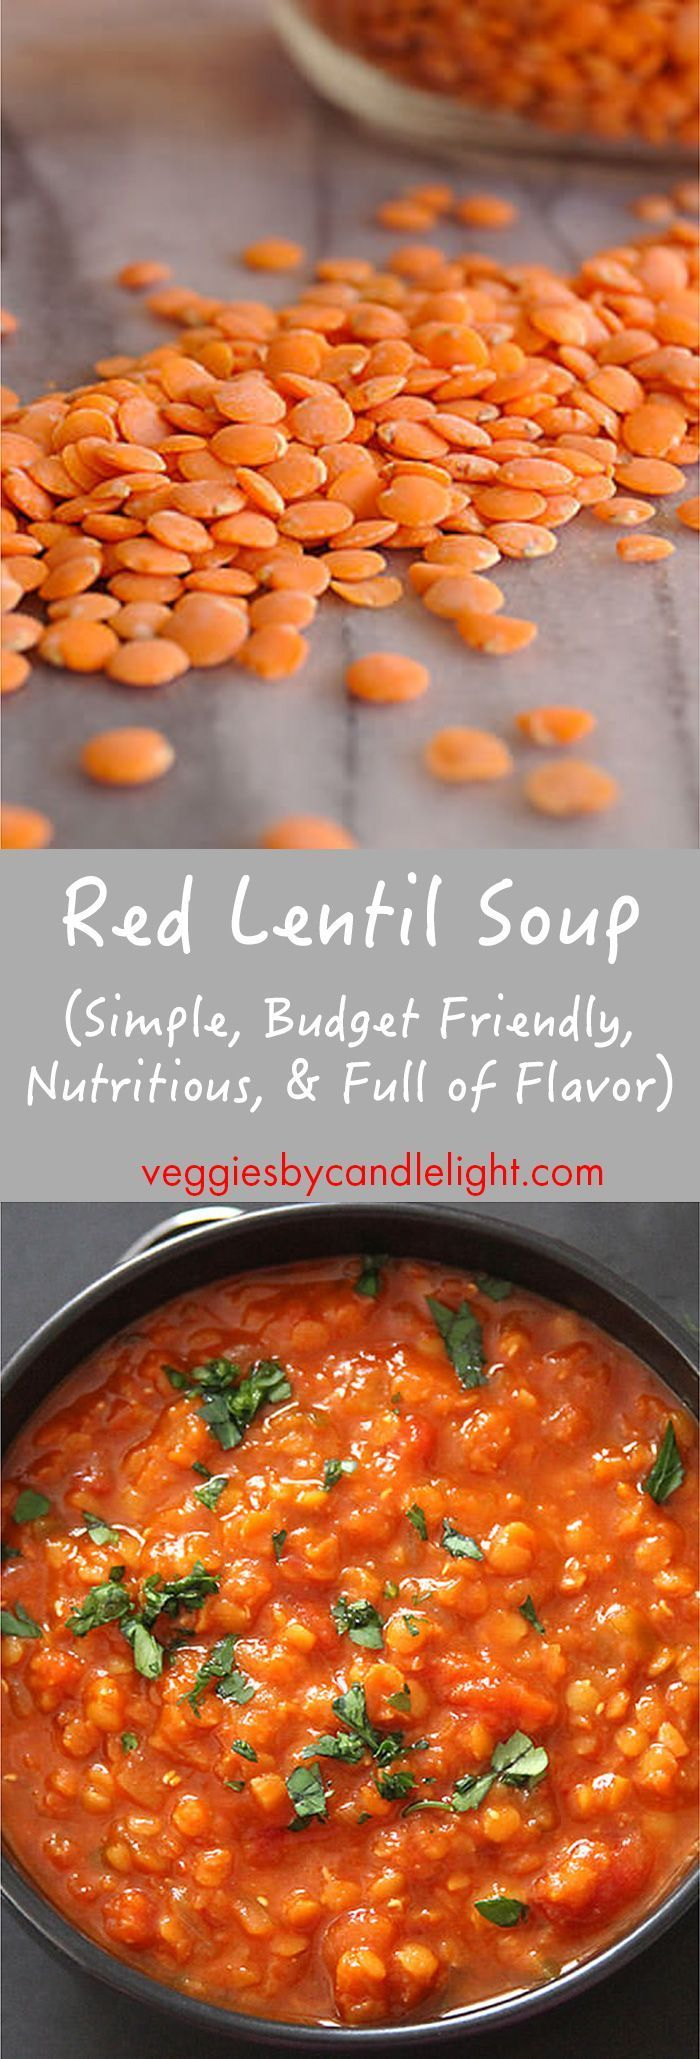 Red Lentil Soup - Simple to make, budget friendly, highly nutritious, & packed with flavor, this lentil soup makes a wonderful summertime meal